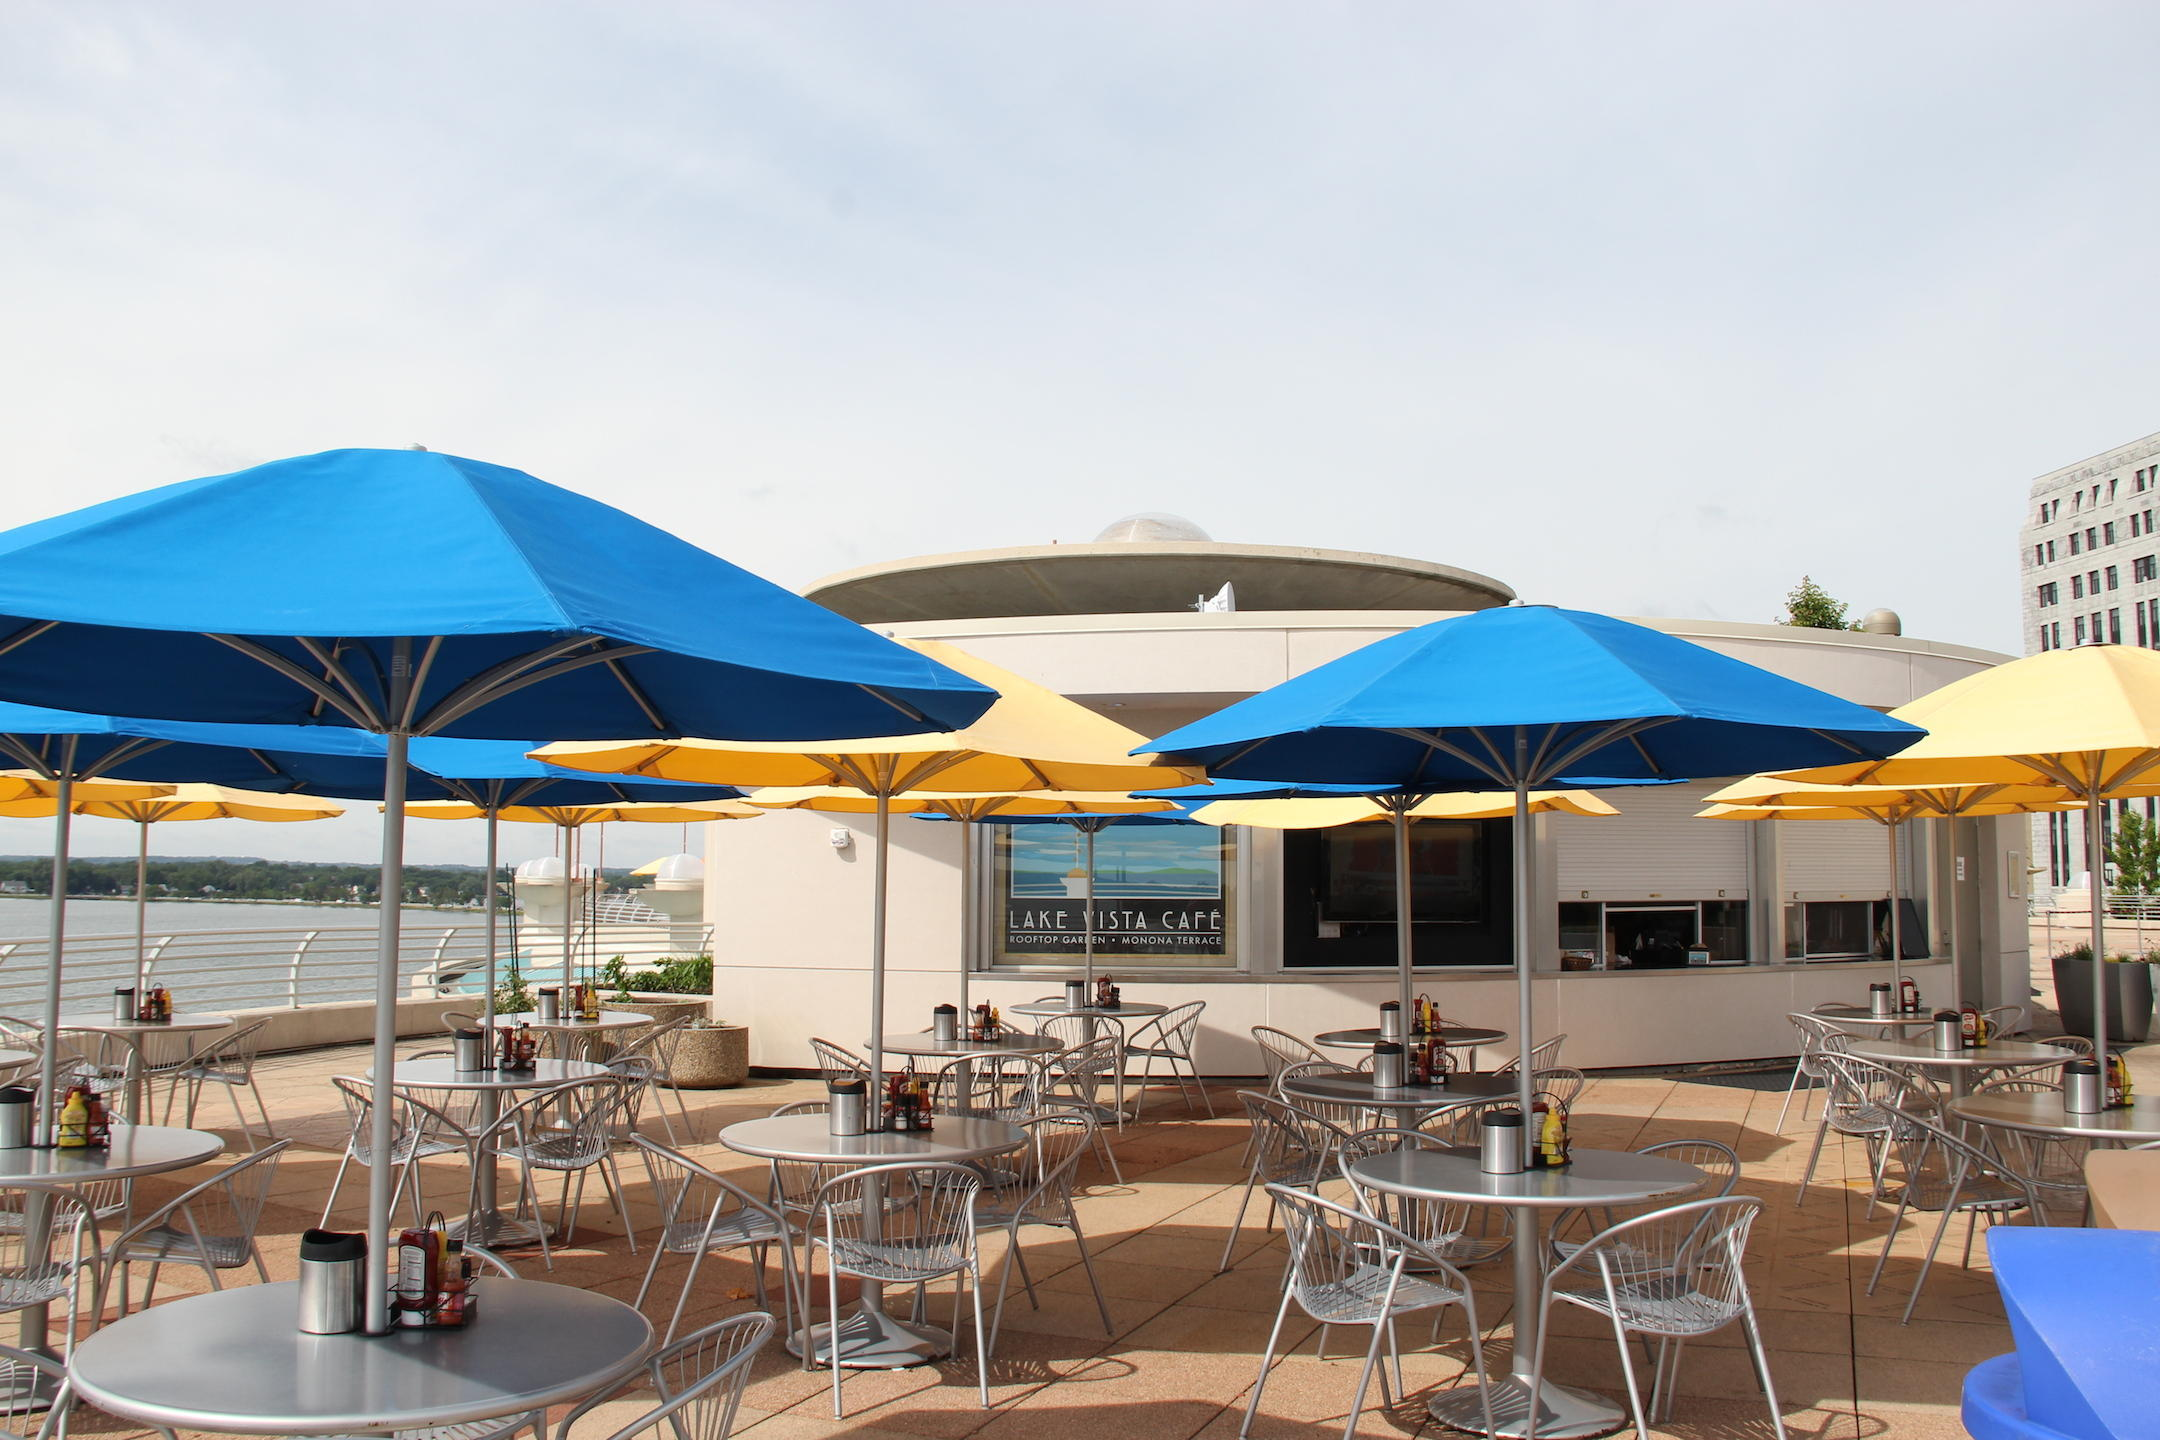 Lake Vista Cafe fooftop at Monona Terrace & Frank Lloyd Wrightu0027s stunning Monona Terrace Convention Center in ...